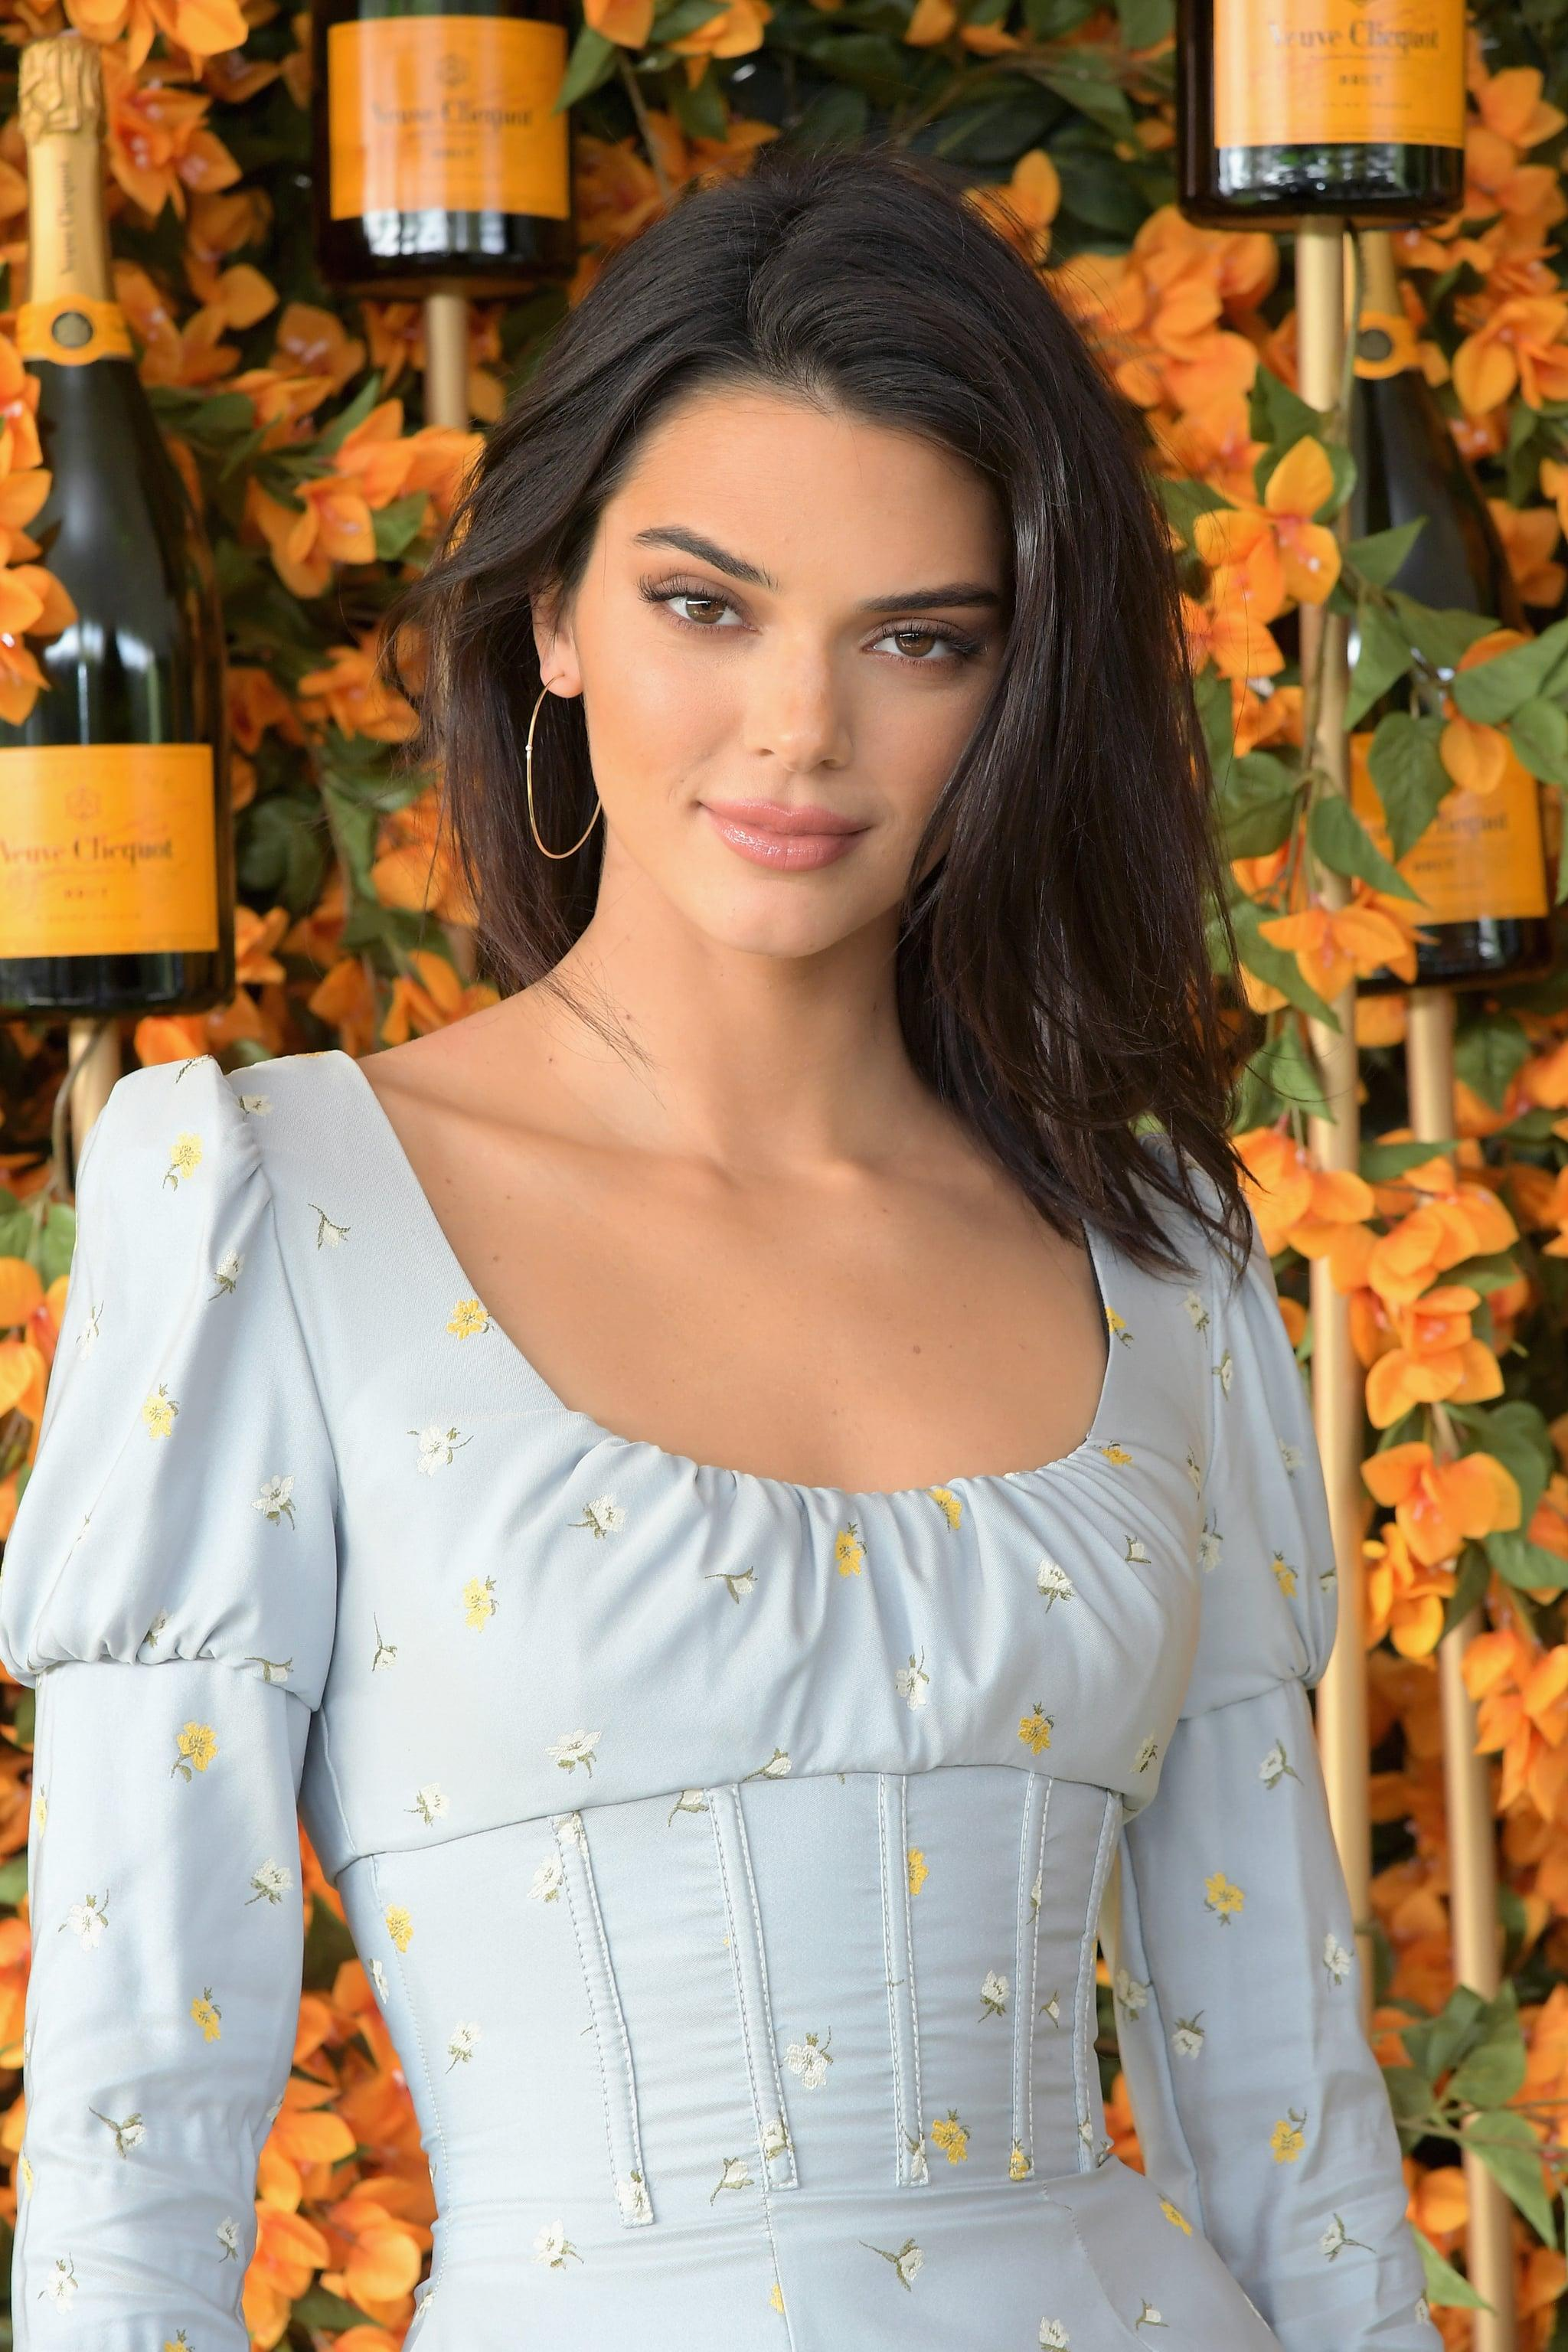 eb9829996200eb Kendall Jenner's Corseted Minidress Is Exactly the Modern Renaissance We  Need